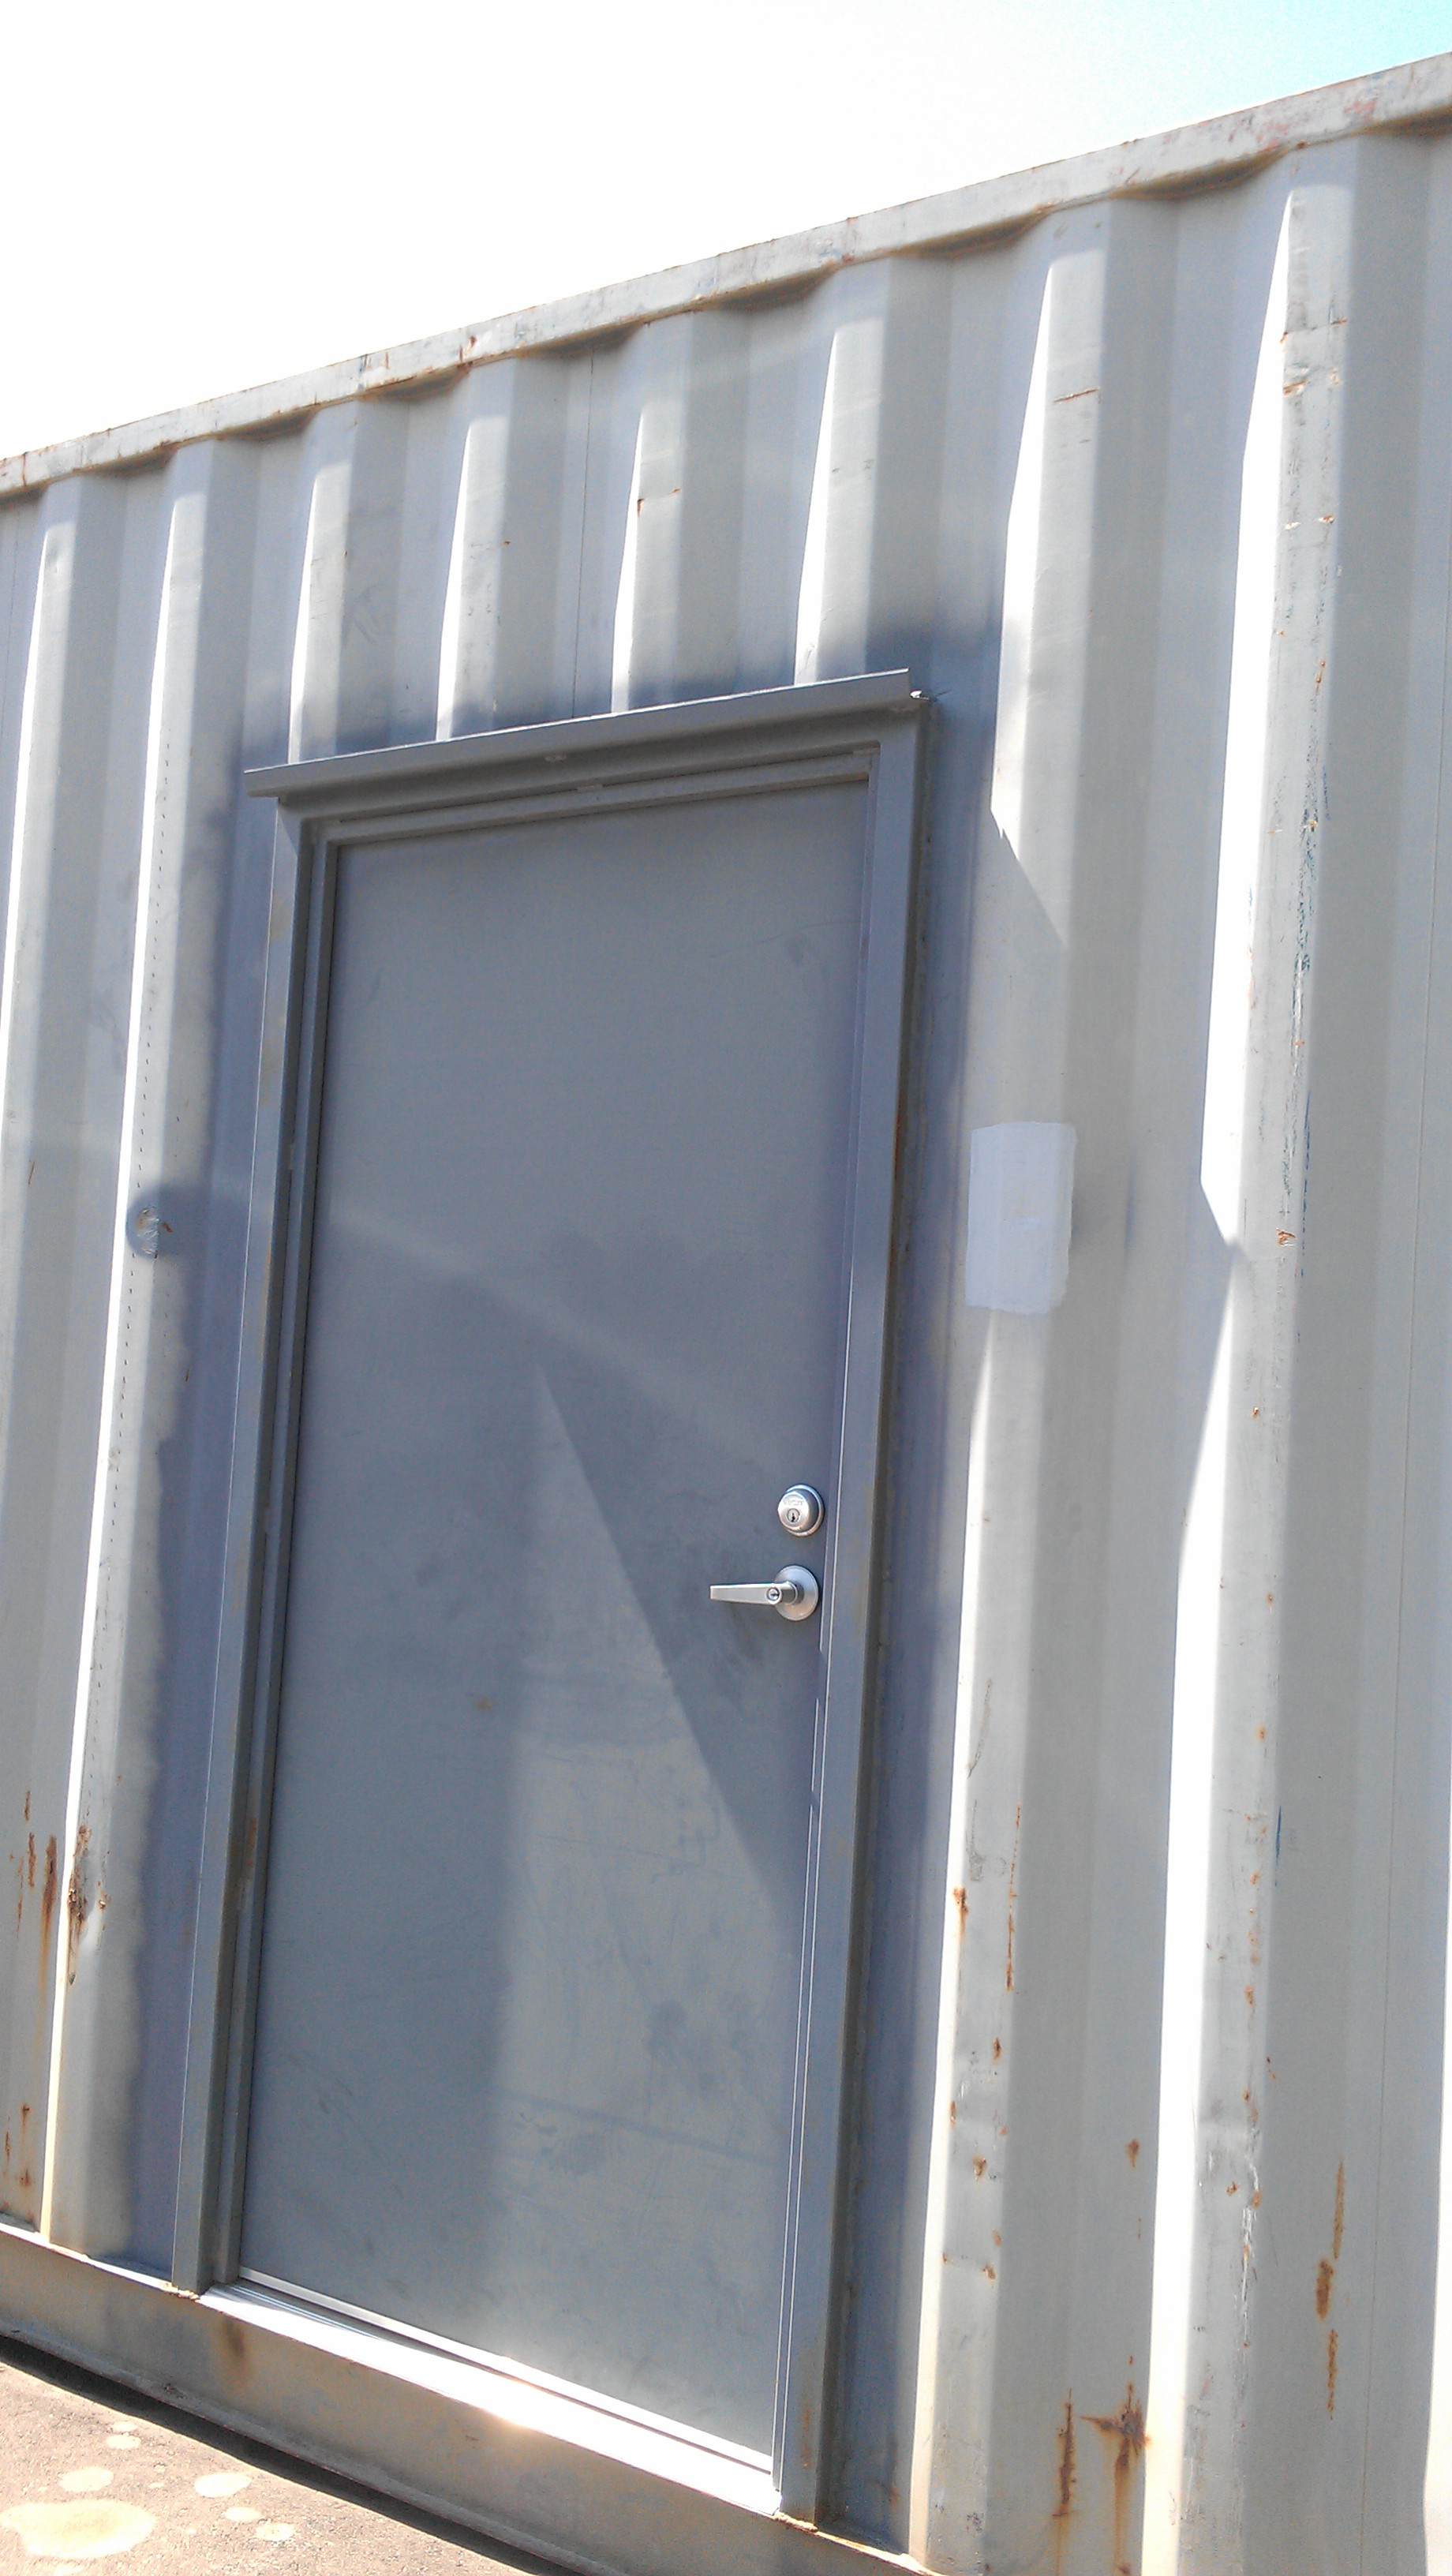 Man-door installed on container